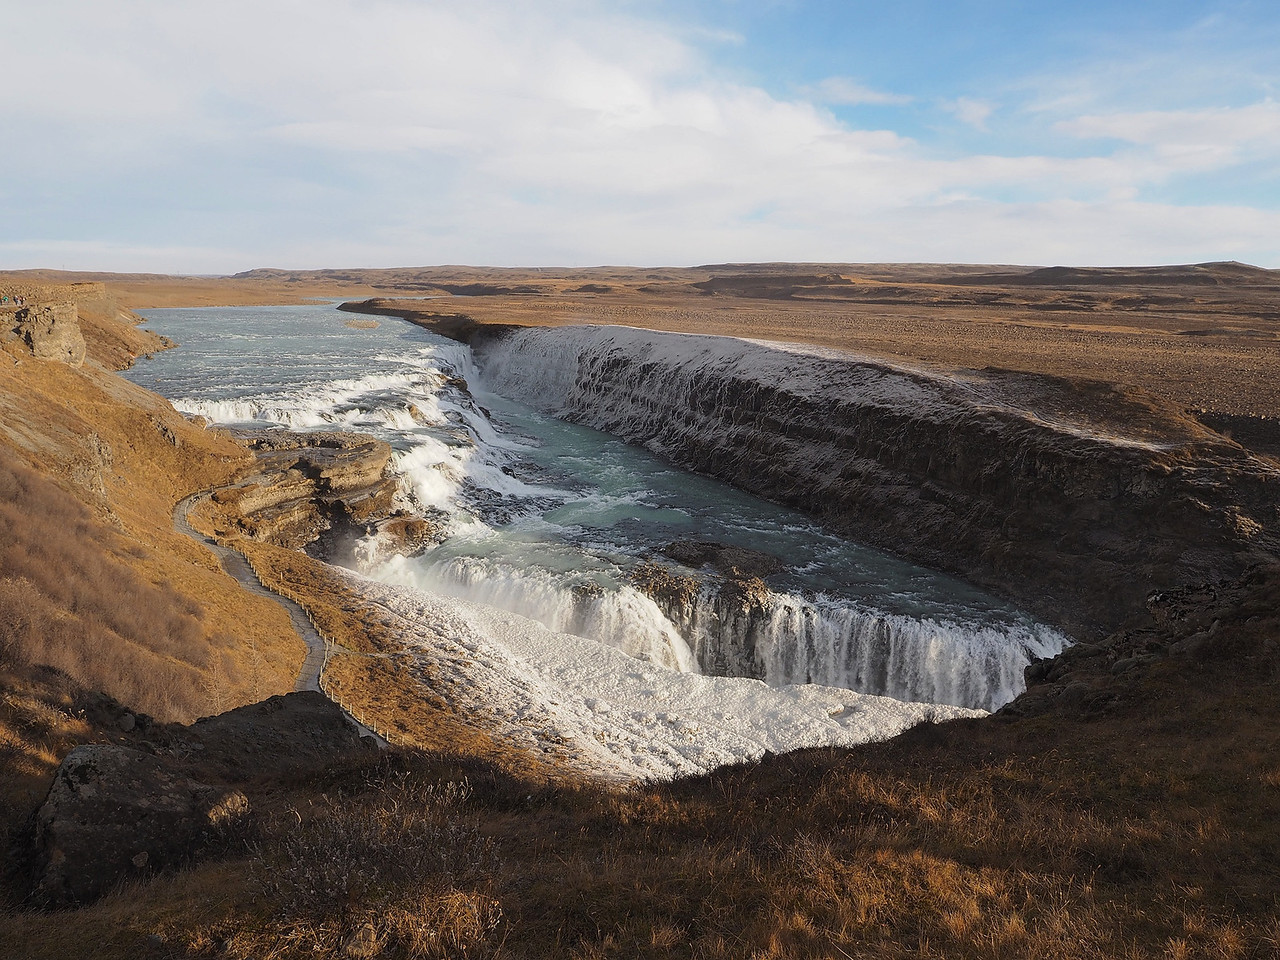 Gullfoss waterfall. Olympus E-M1, 12mm This is one massive & powerful waterfall. Plenty of opps for wide shots together such as this which nicely captures the scale of these falls.